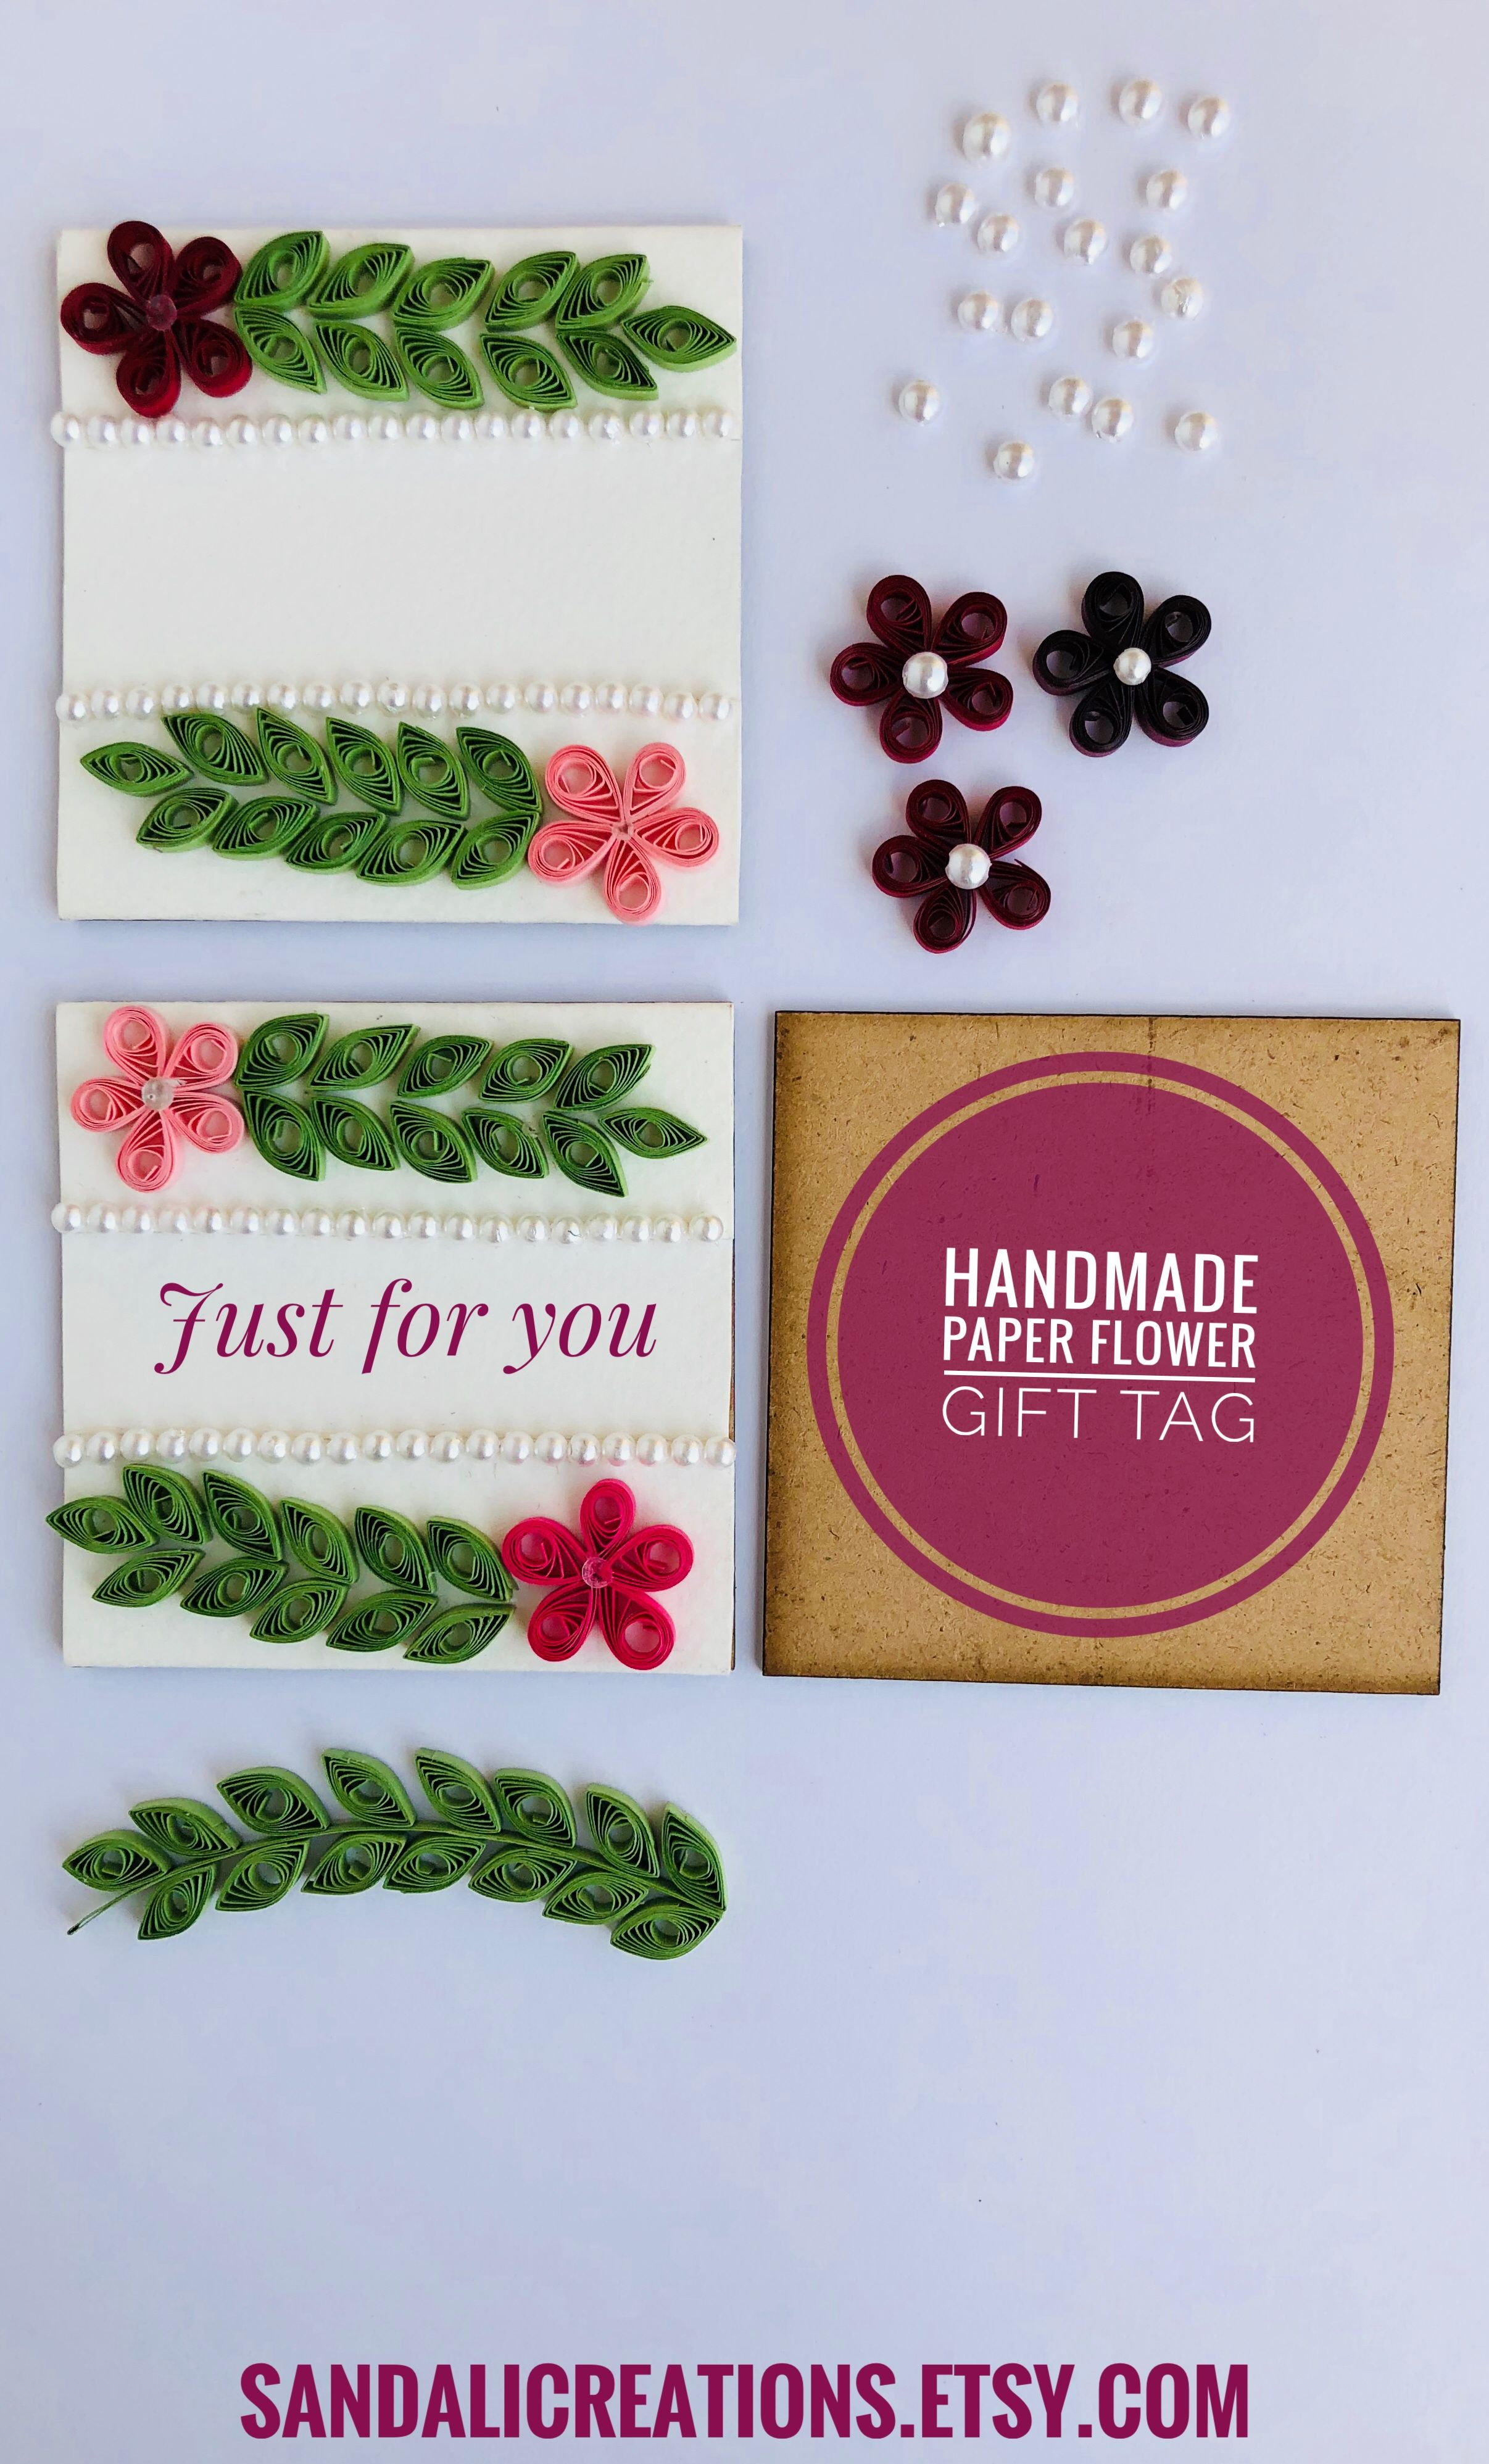 Set of holiday gift tageaster basket gift tagquilling flower